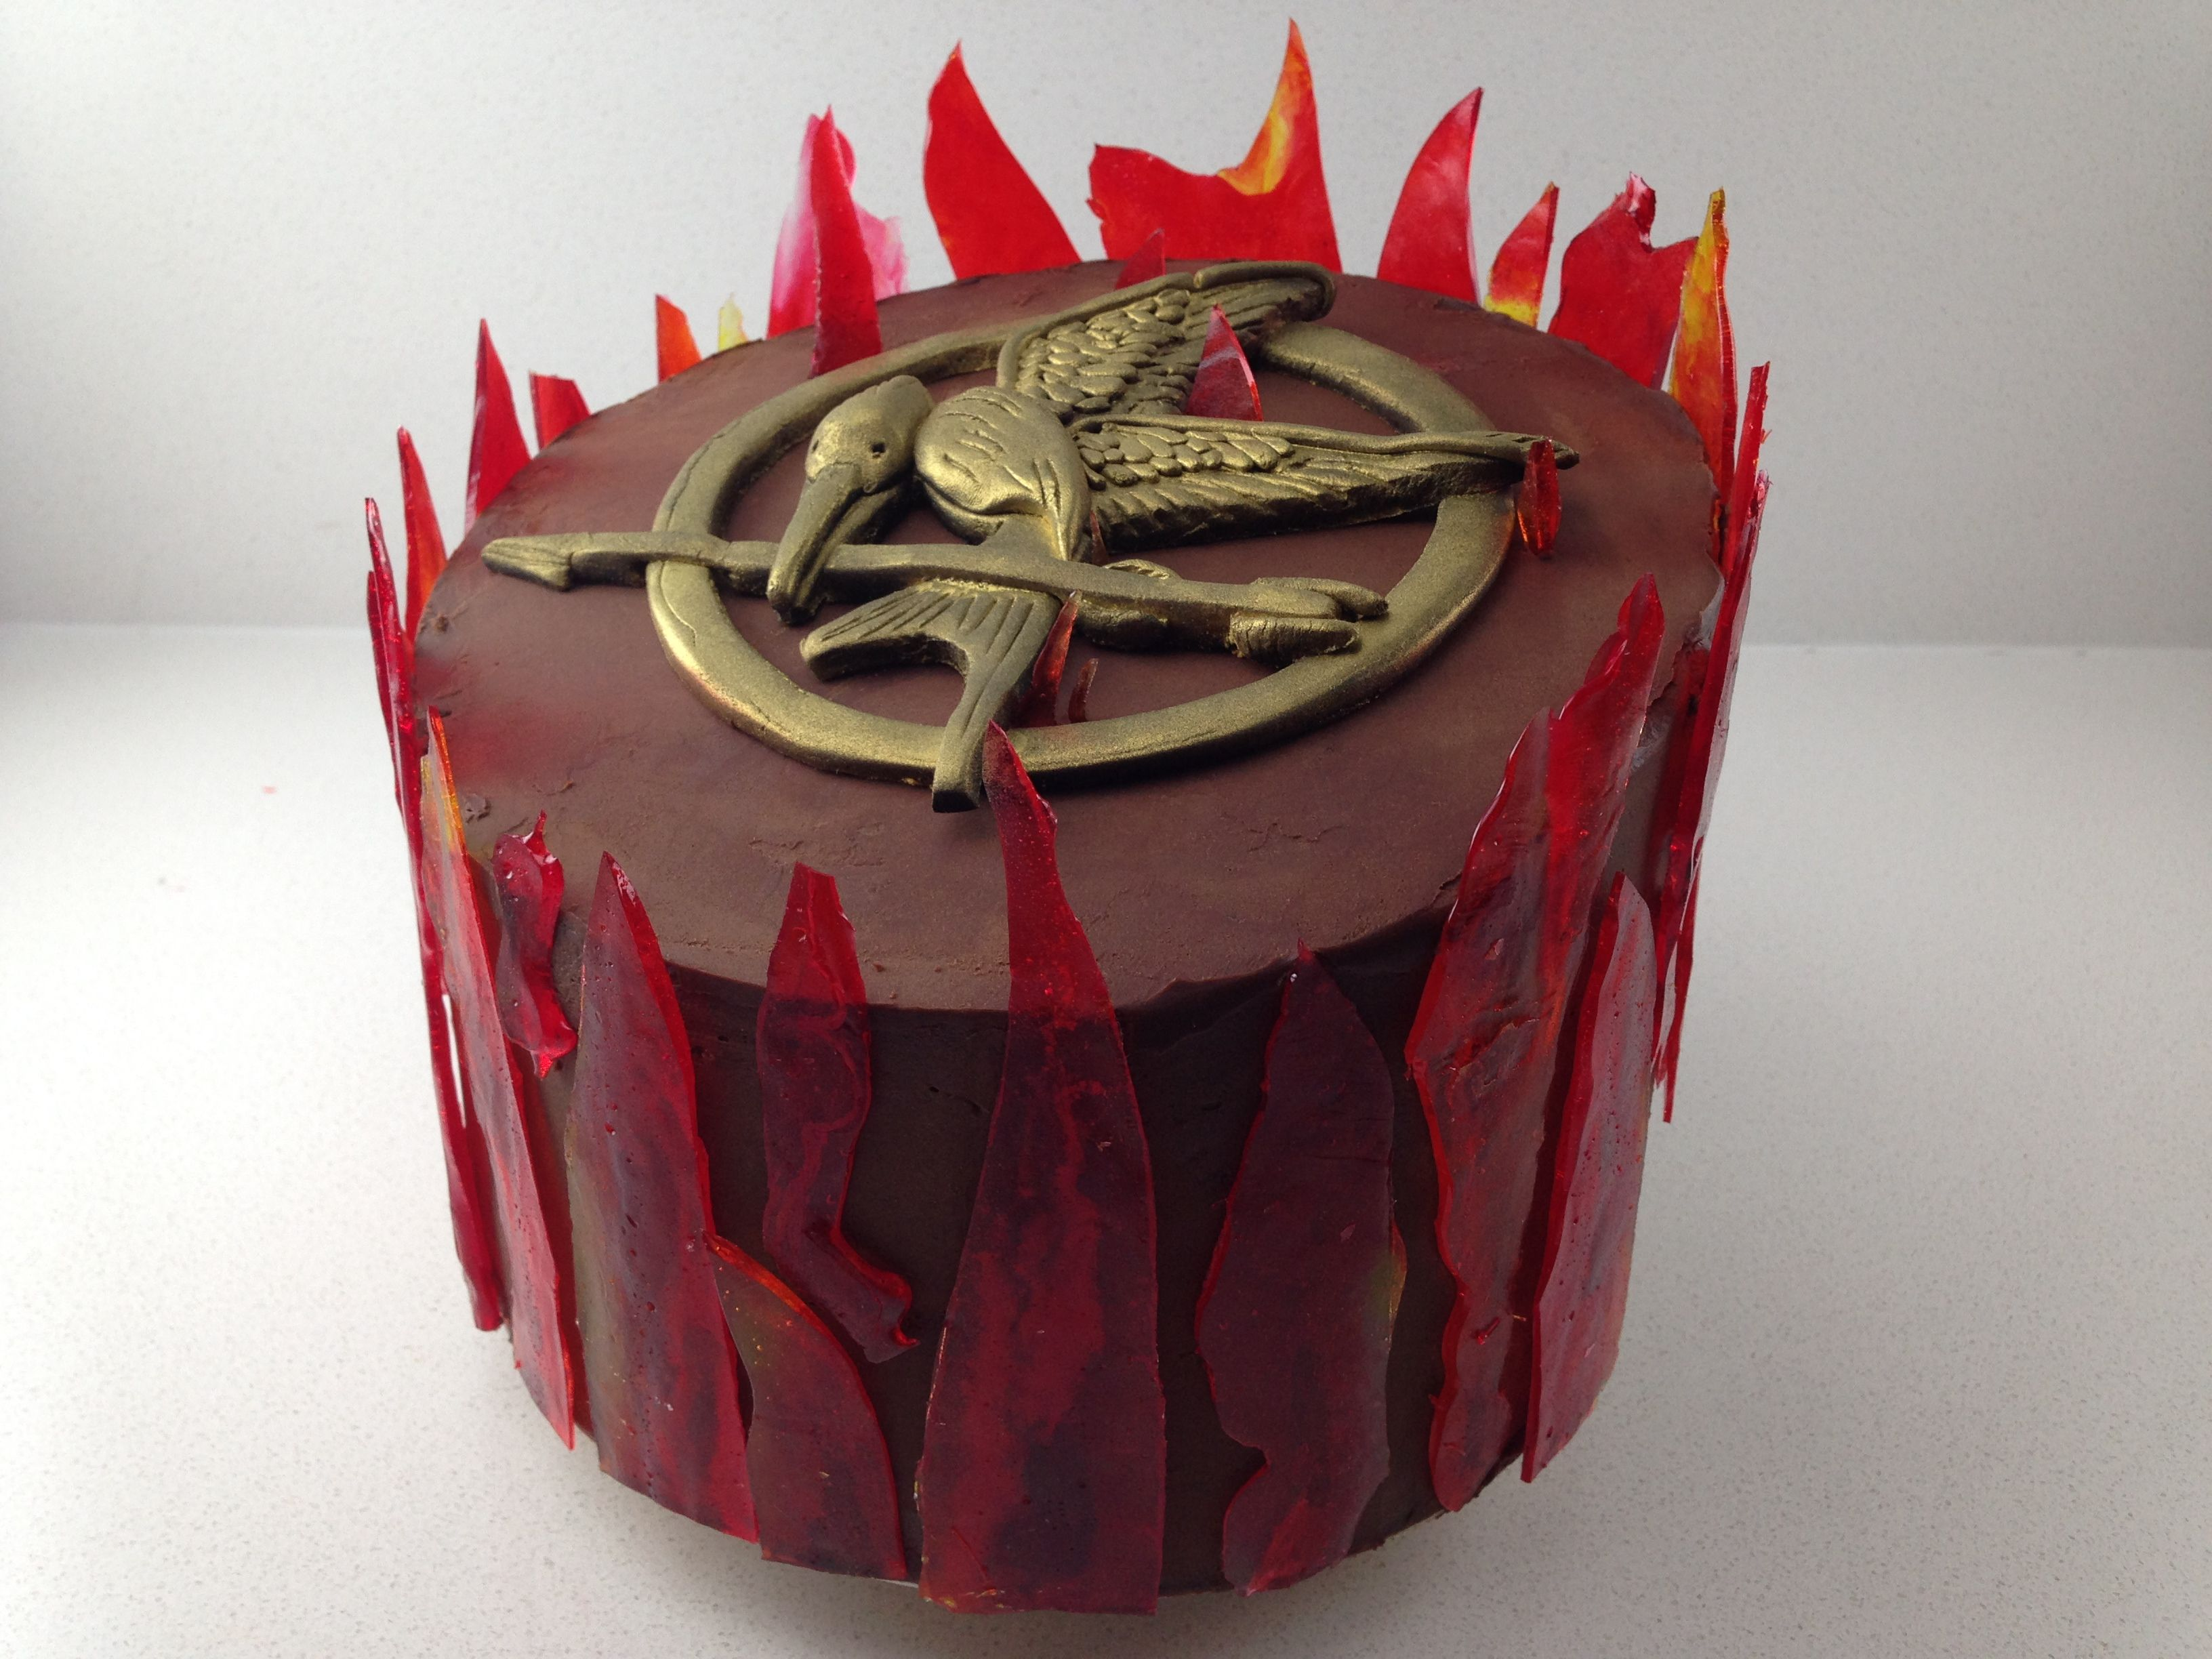 Hunger Games Chocolate Cake Recipe